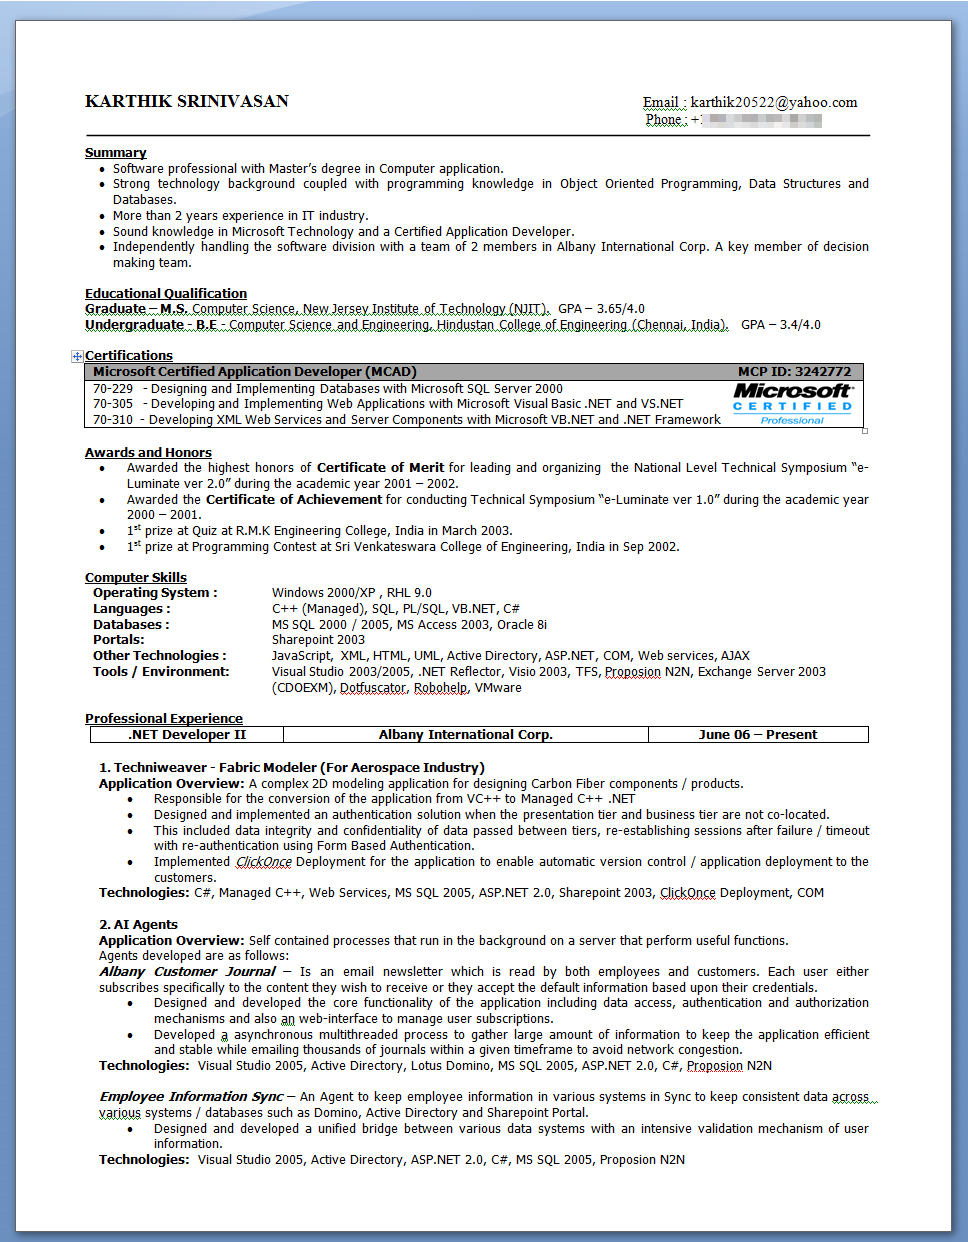 Resume For A Second Job Then there was this: while looking to move from second job (Travelocity)